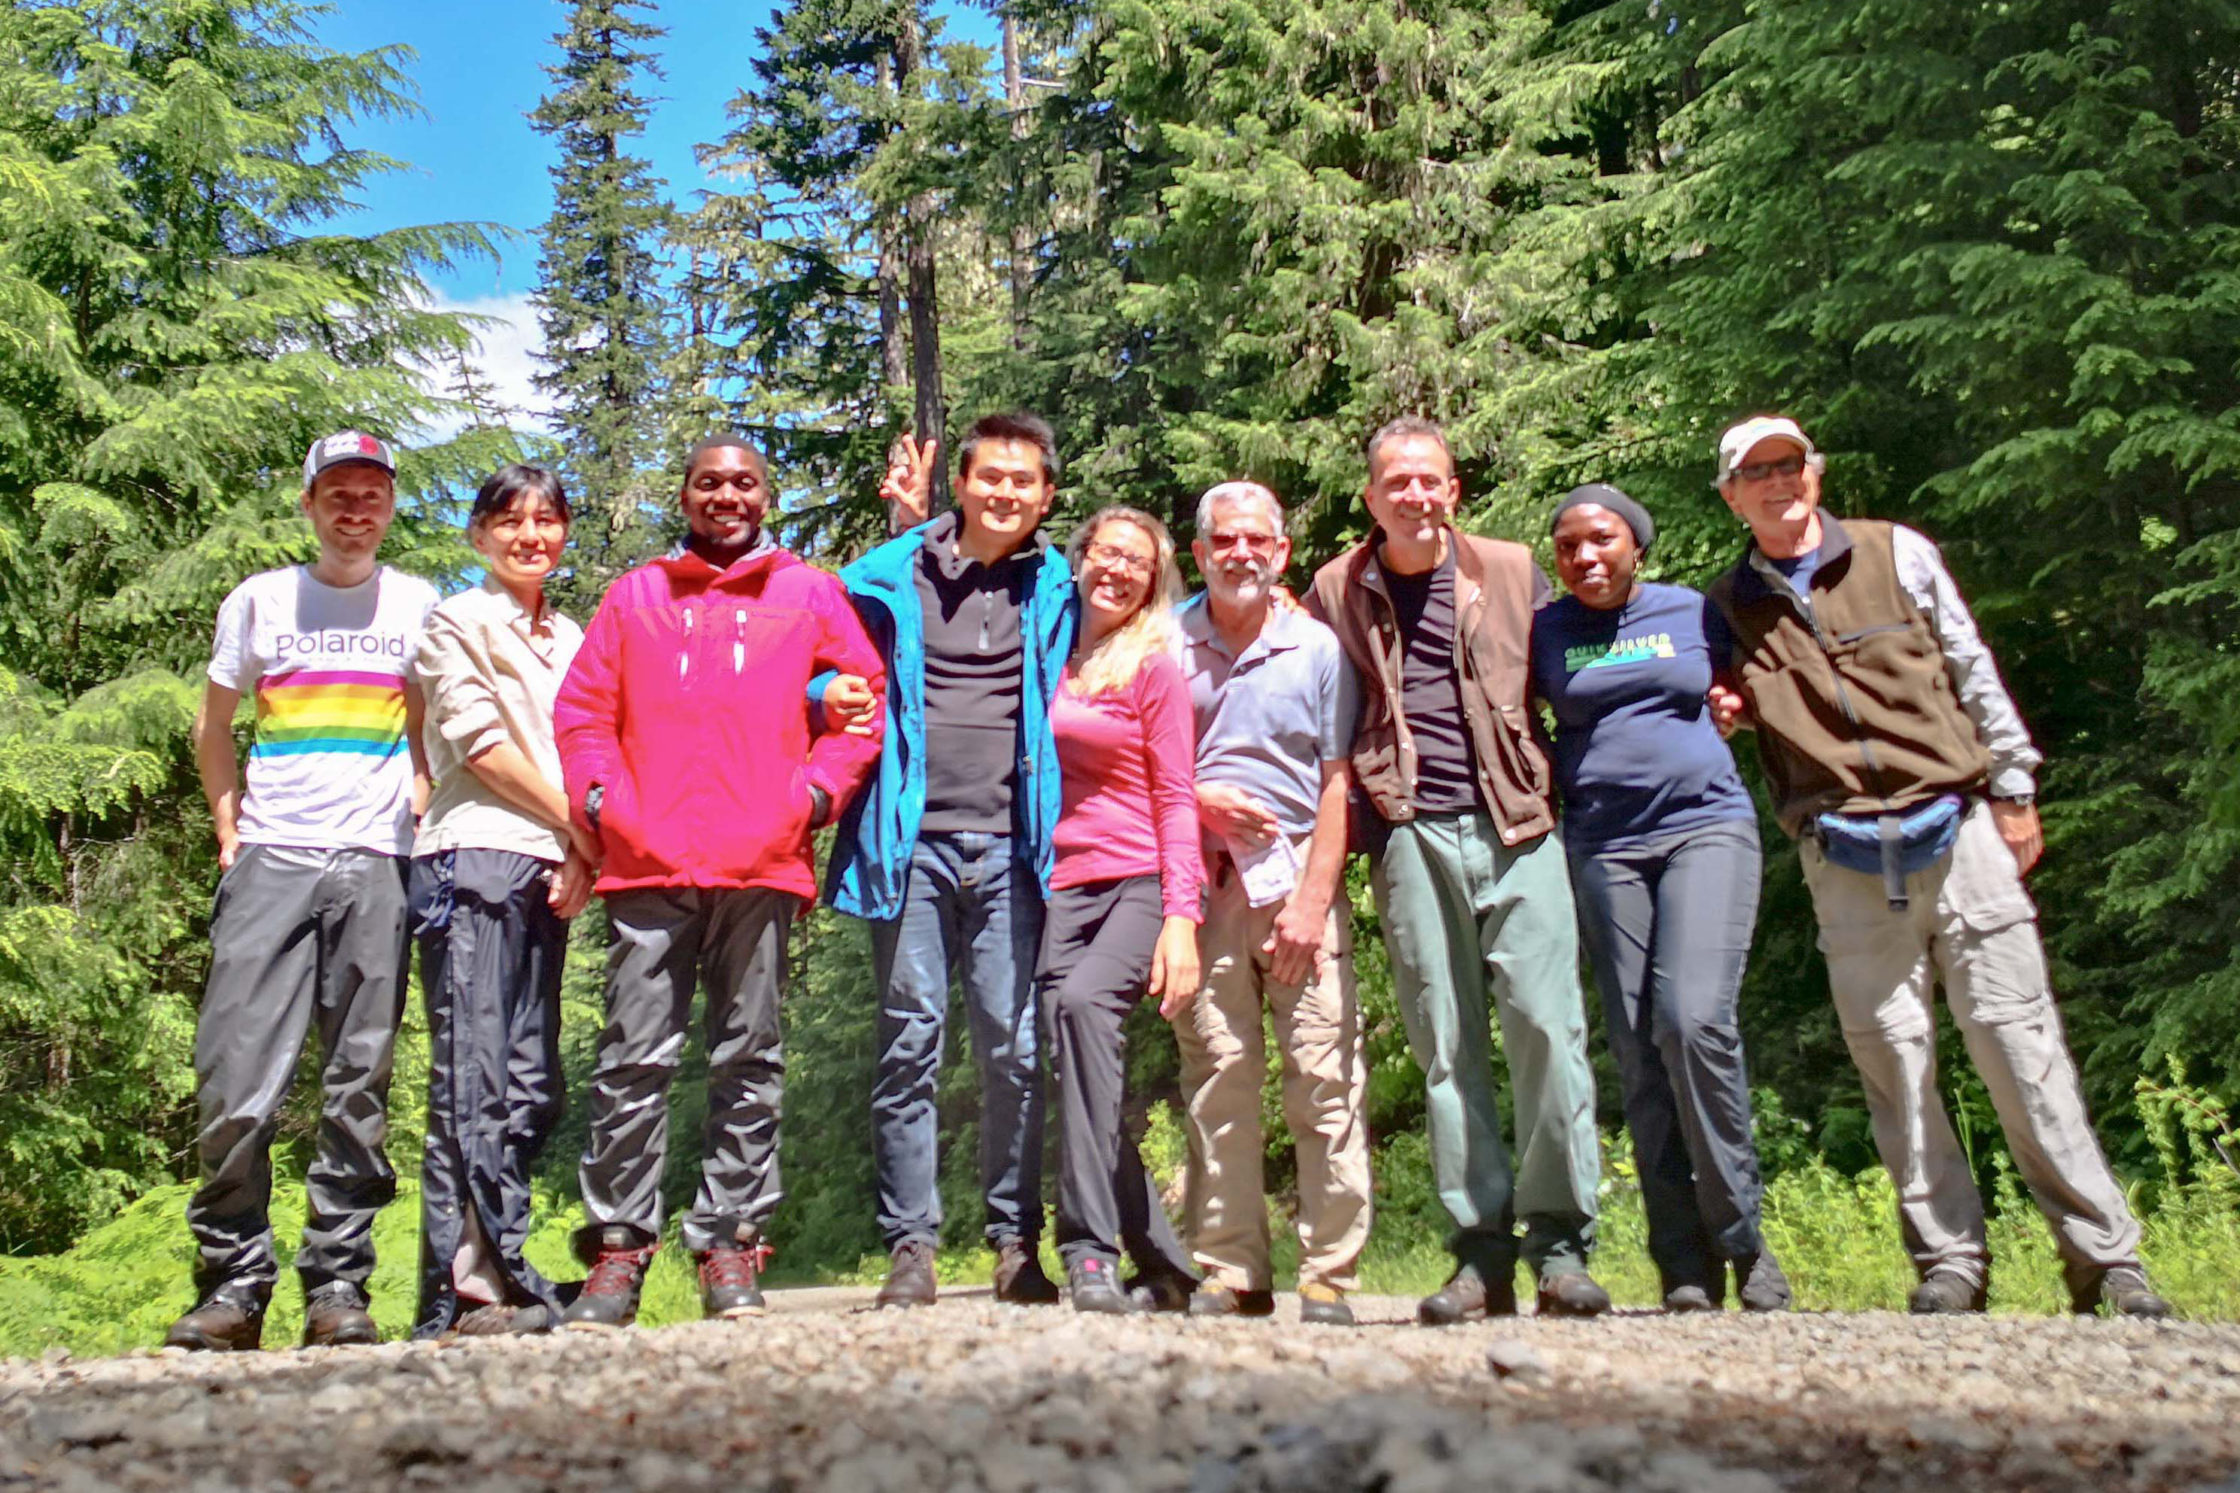 International Fellows posing on a trail in a forest